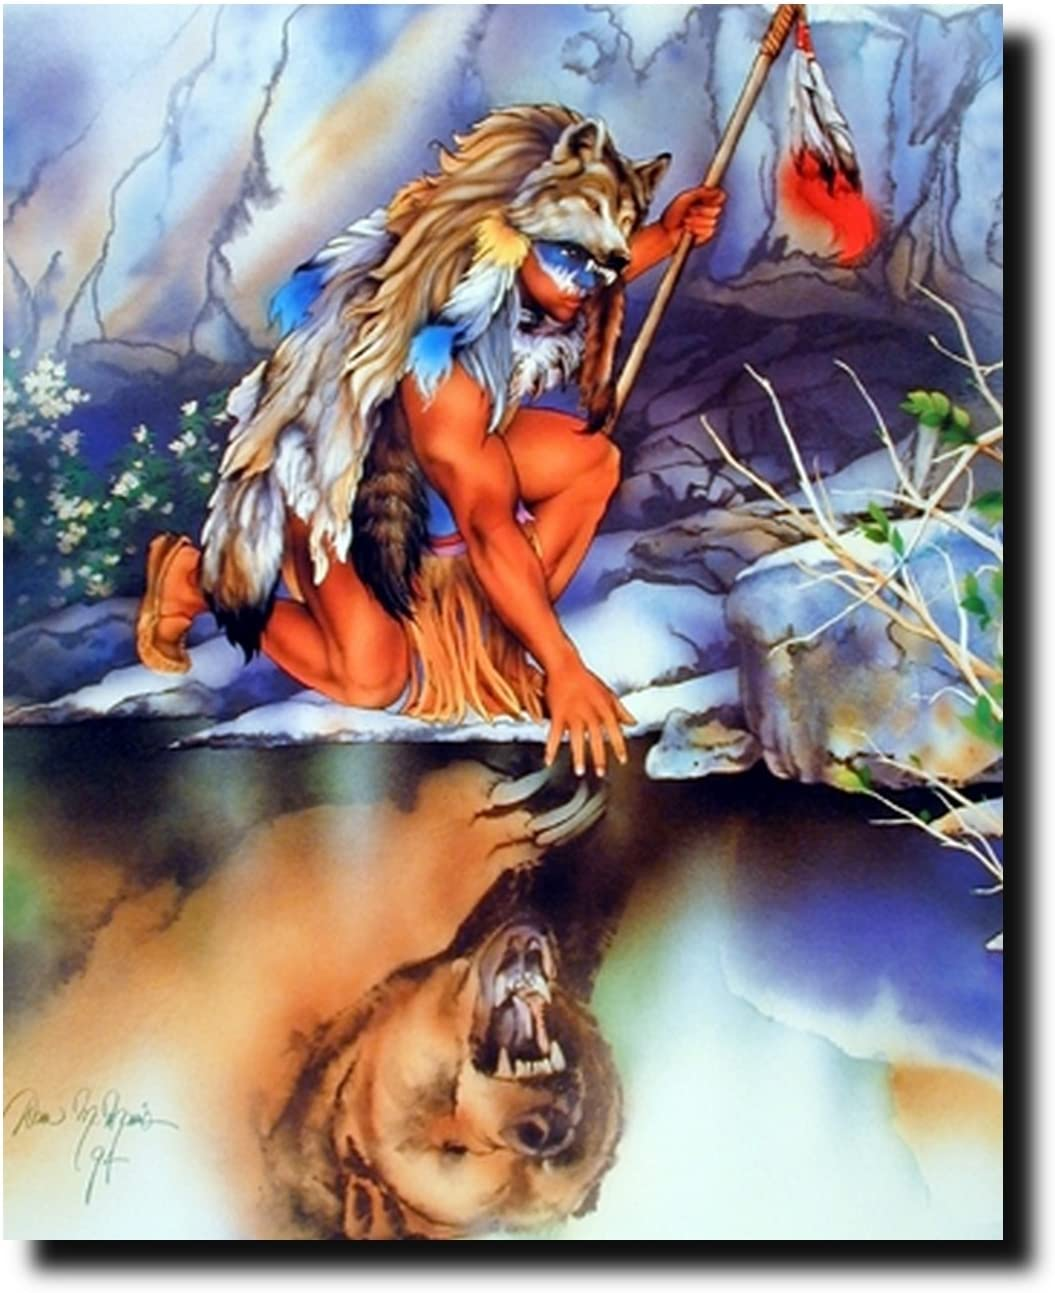 Reflection of Indian Warrior Native American Wall Decor Art Print Poster (16x20)